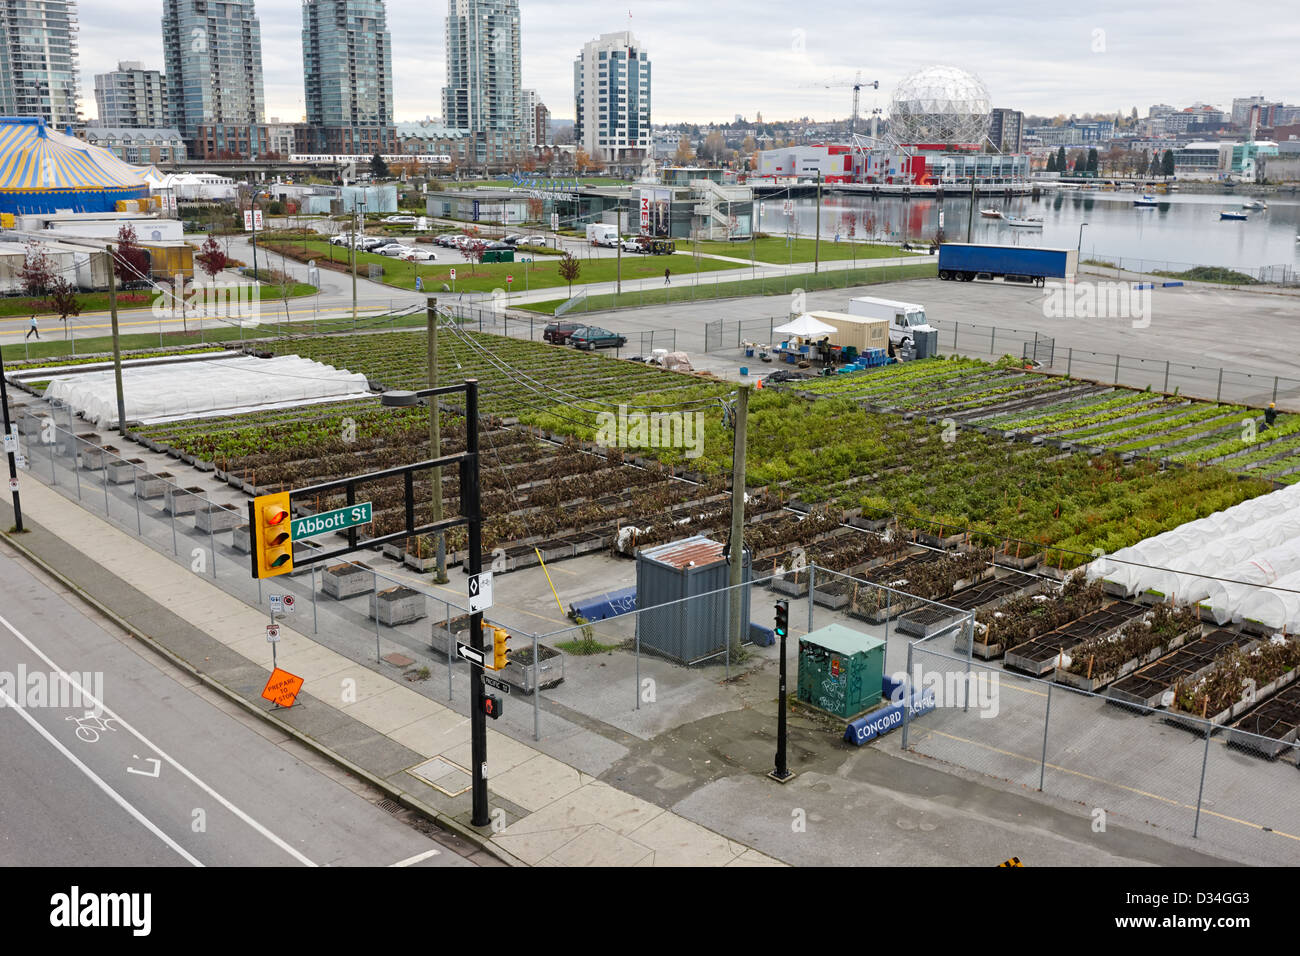 urban farm on unused lot at concord pacific place at false creek Vancouver BC Canada - Stock Image